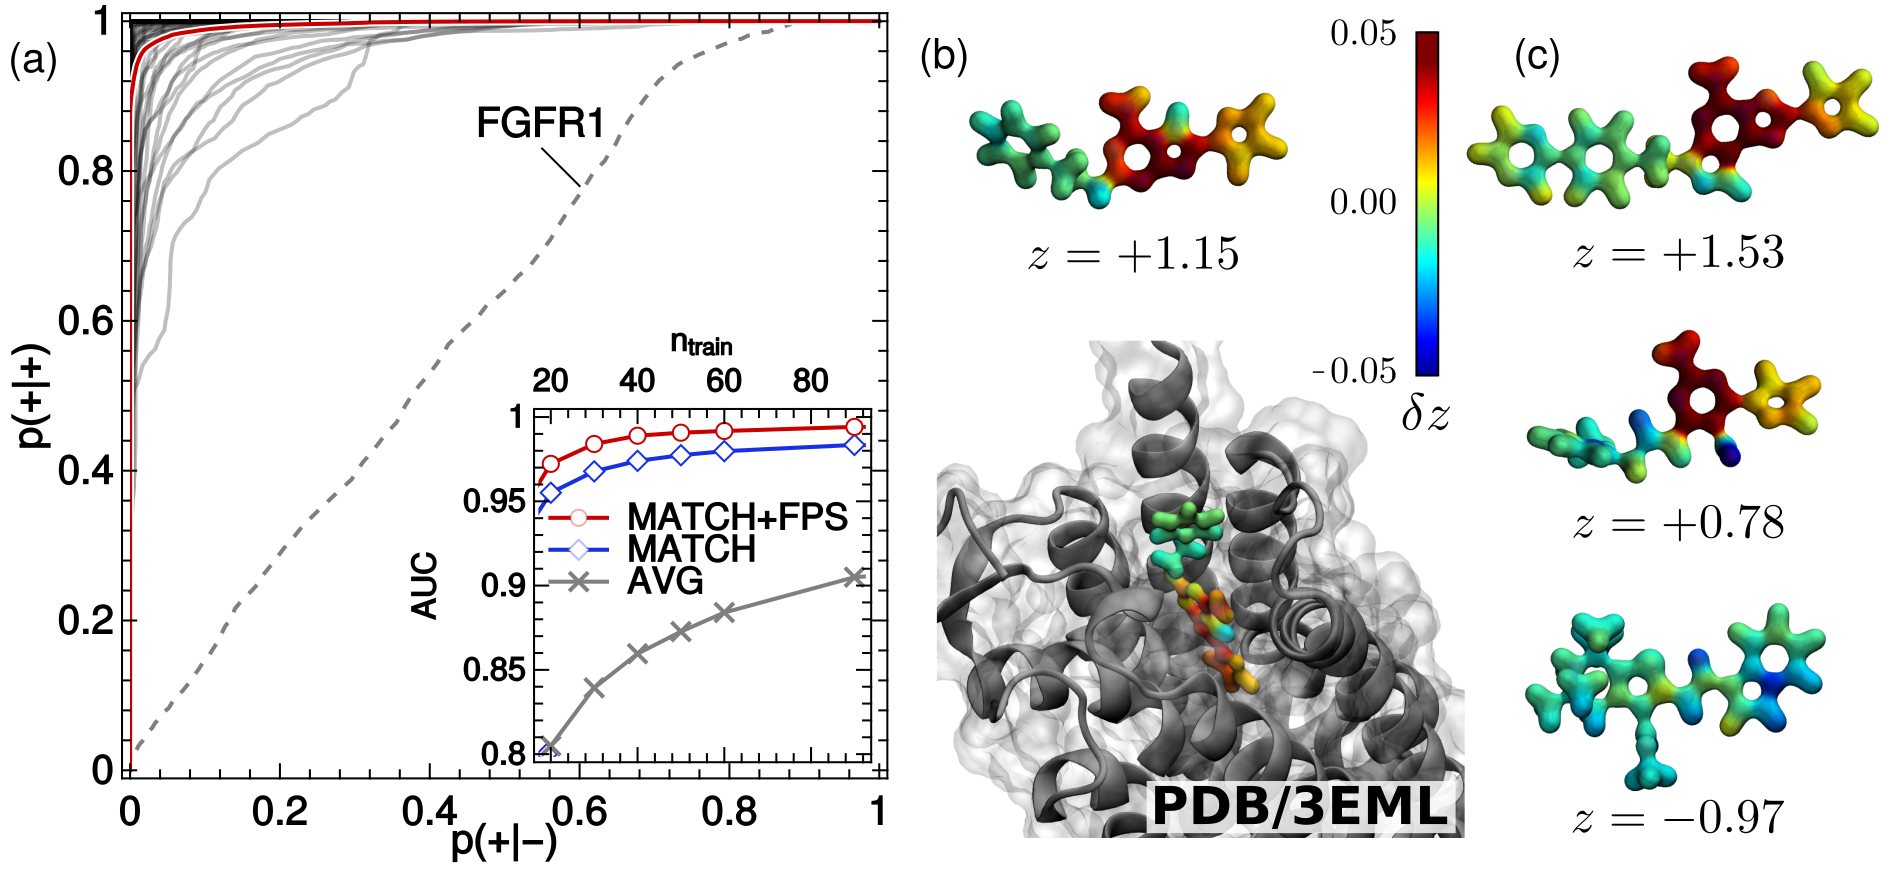 (a) Receiver operating characteristics (ROCs) of binary classifiers based on a SOAP kernel, applied to the prediction of the binding behavior of ligands and decoys taken from the DUD-E, trained on